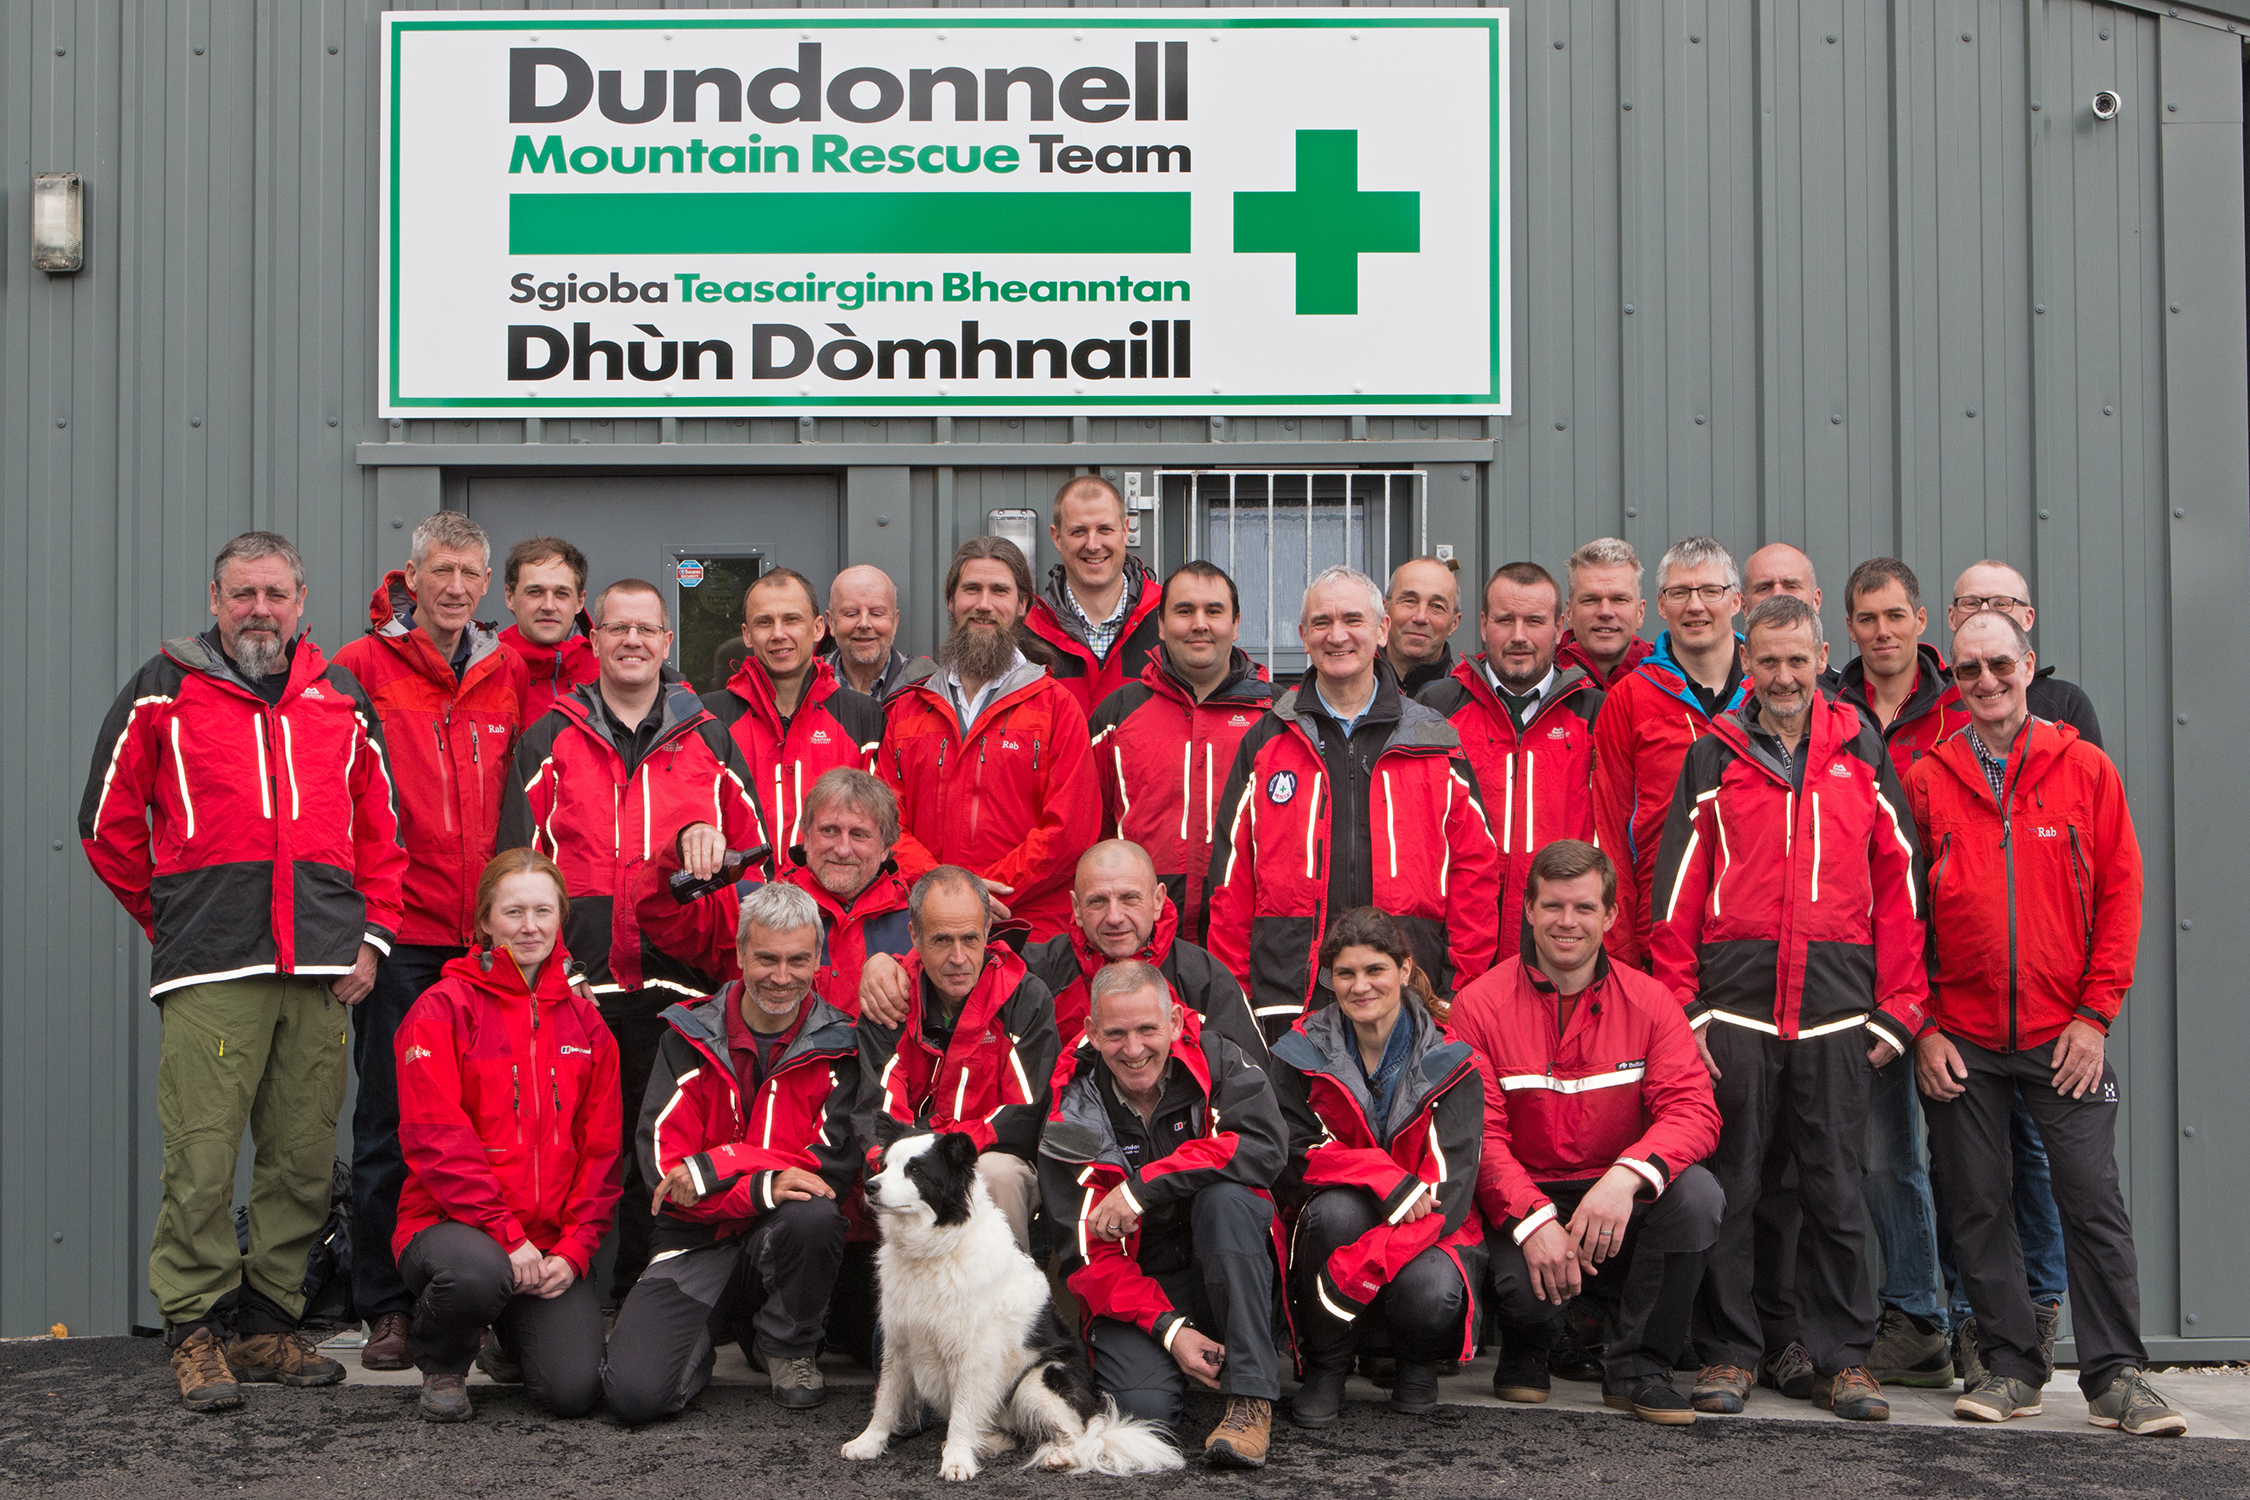 Dundonnell Mountain Rescue Team Base Opening, Dingwall